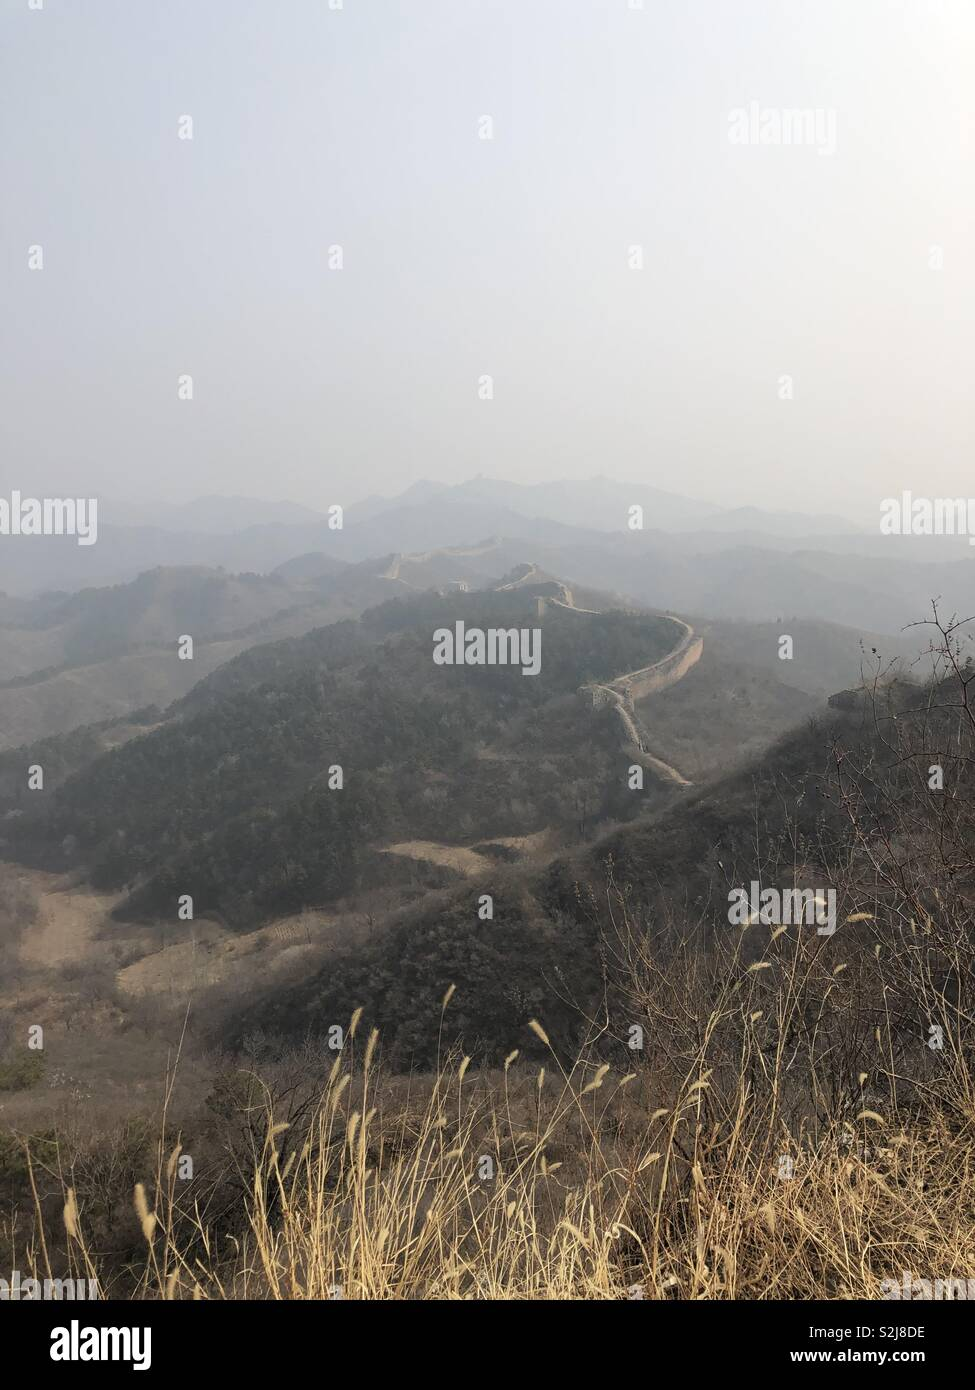 Wistful view over the Great Wall of China - Stock Image